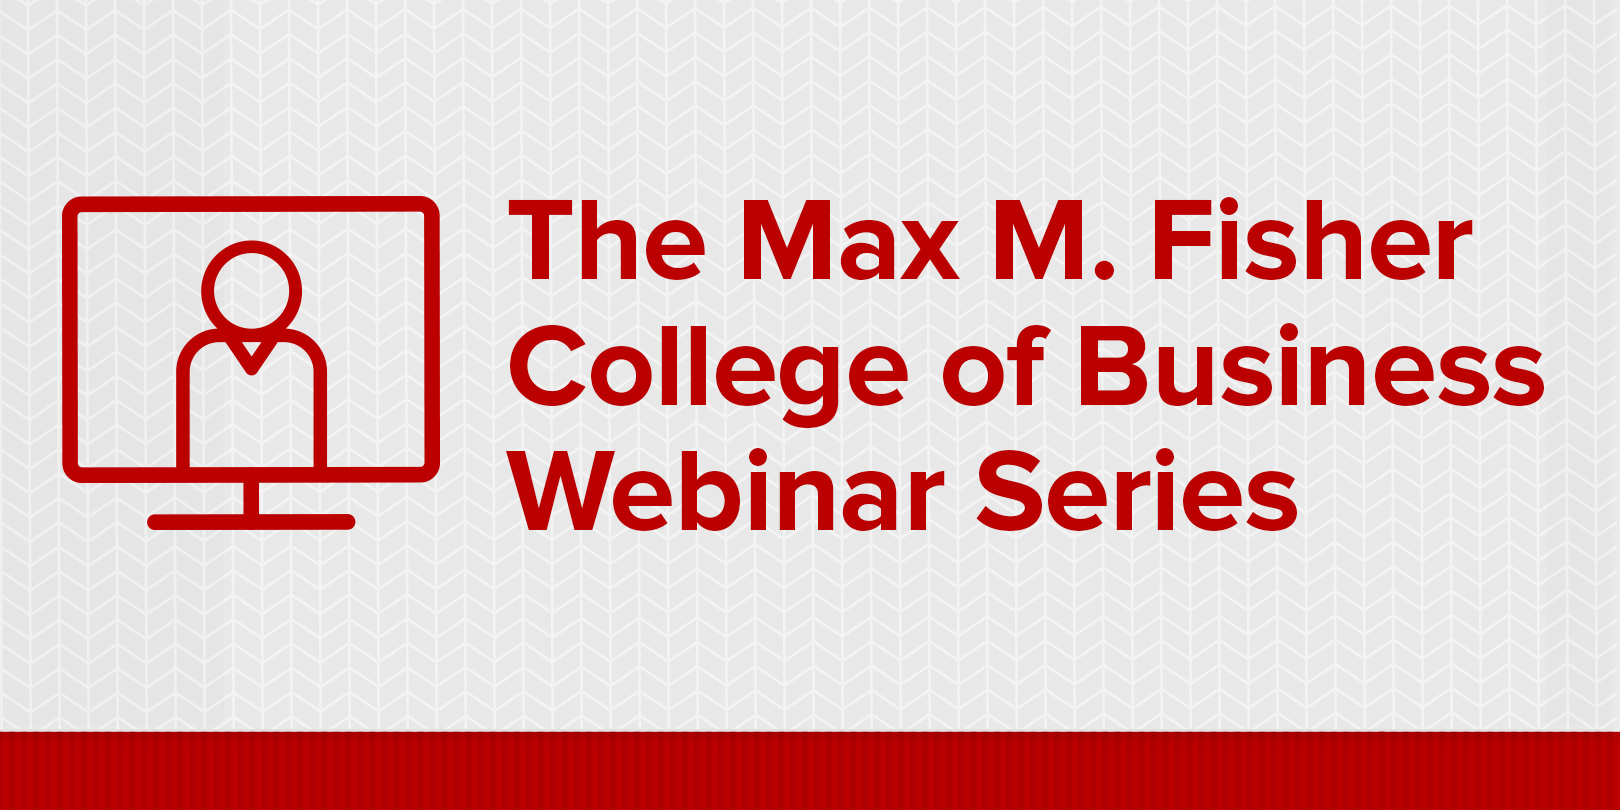 The Max M. Fisher College of Business Webinar Series